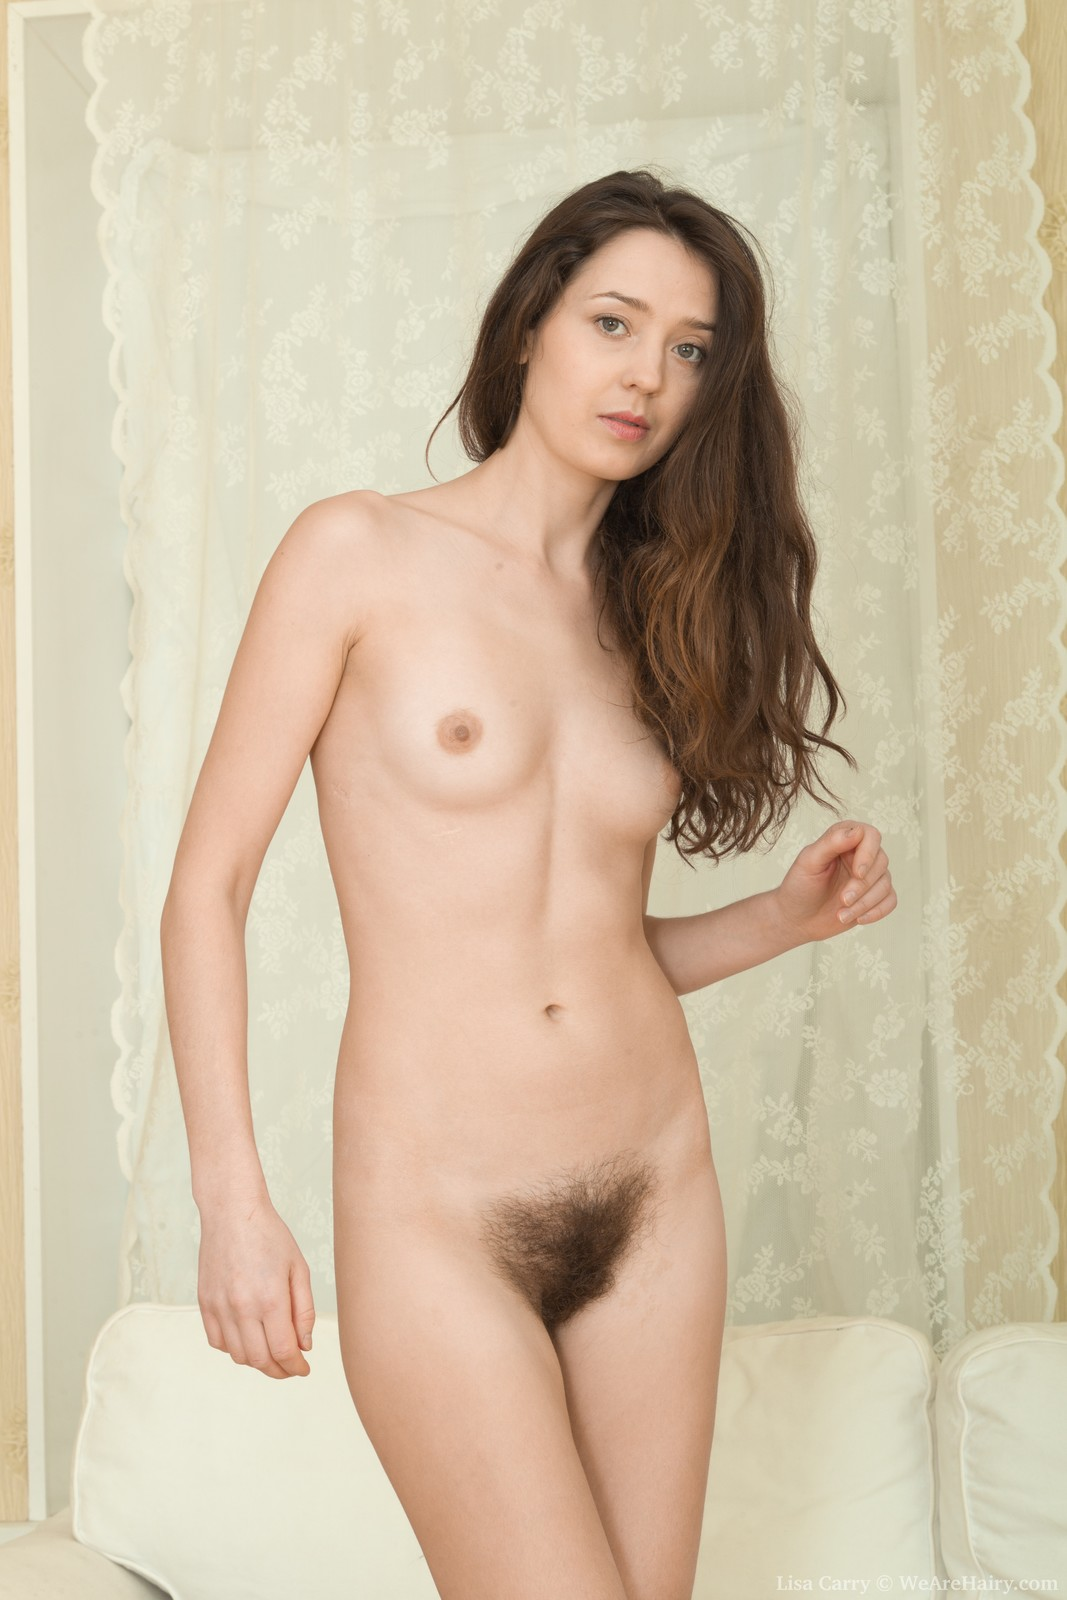 Hairy Women Naked Pictures